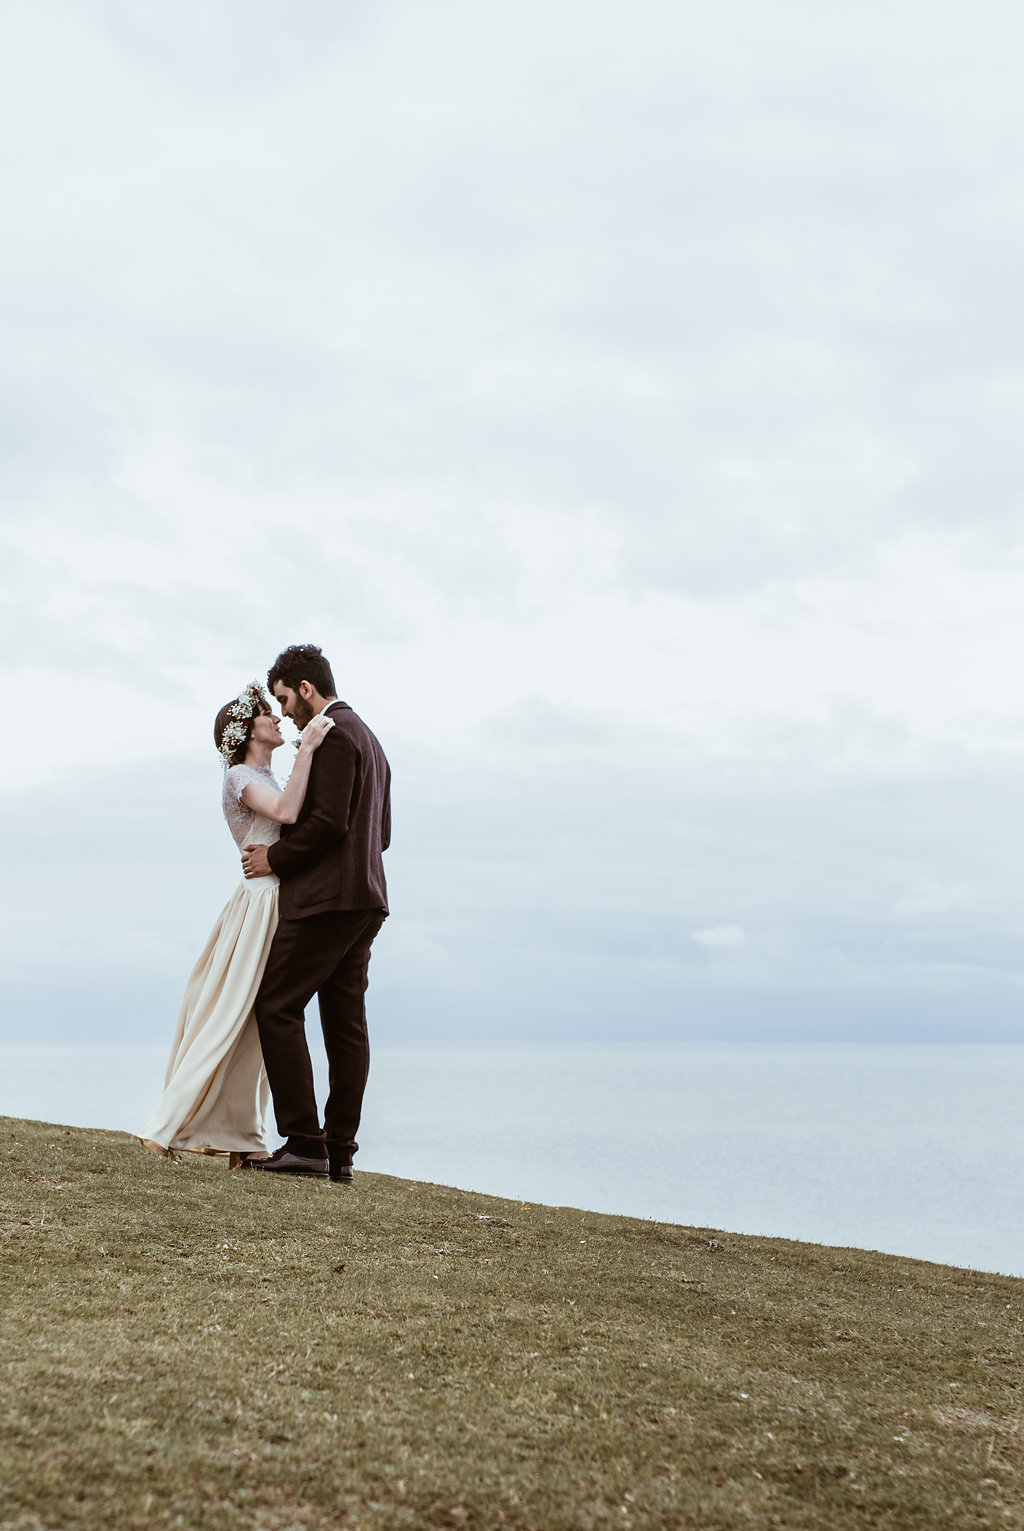 Couples Portraits | Bride and Groom | Wedding Photography | Swansea, South Wales | Down to Earth | Our Beautiful Adventure Photography